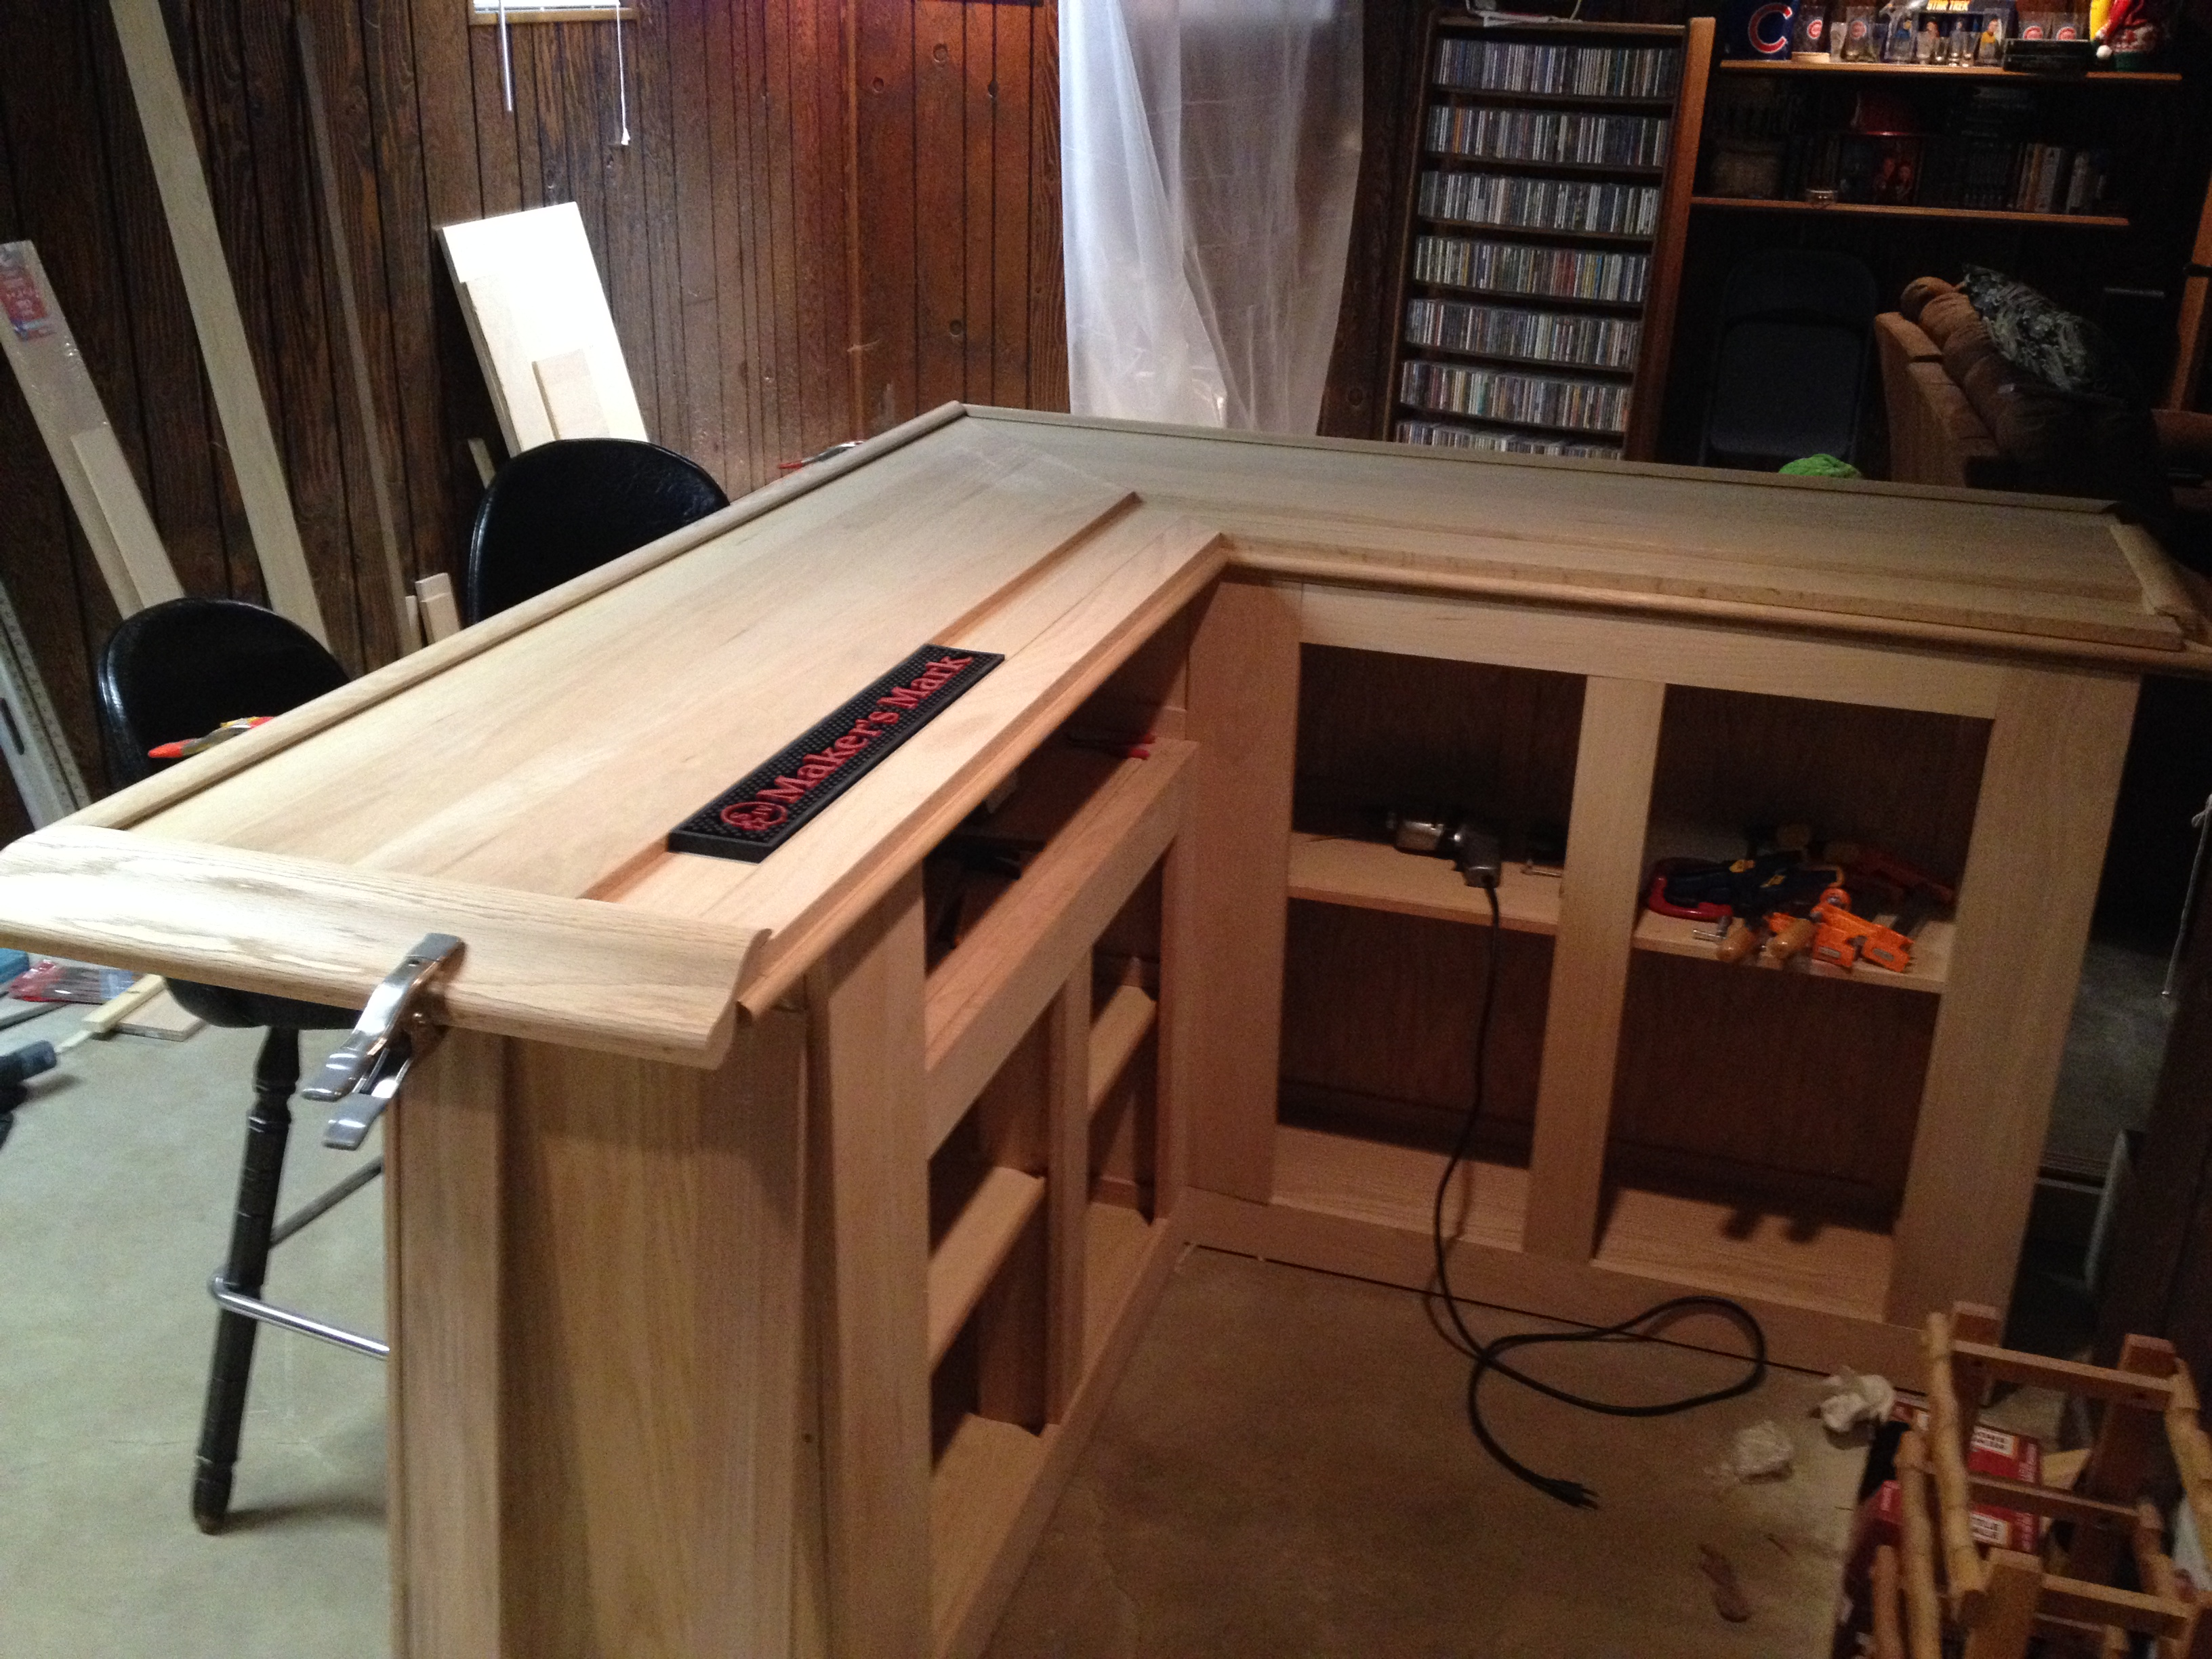 diy basement bar. 2014 04 11 07 02 32  John Everson Dark Arts Blog Archive DIY How To Build Your